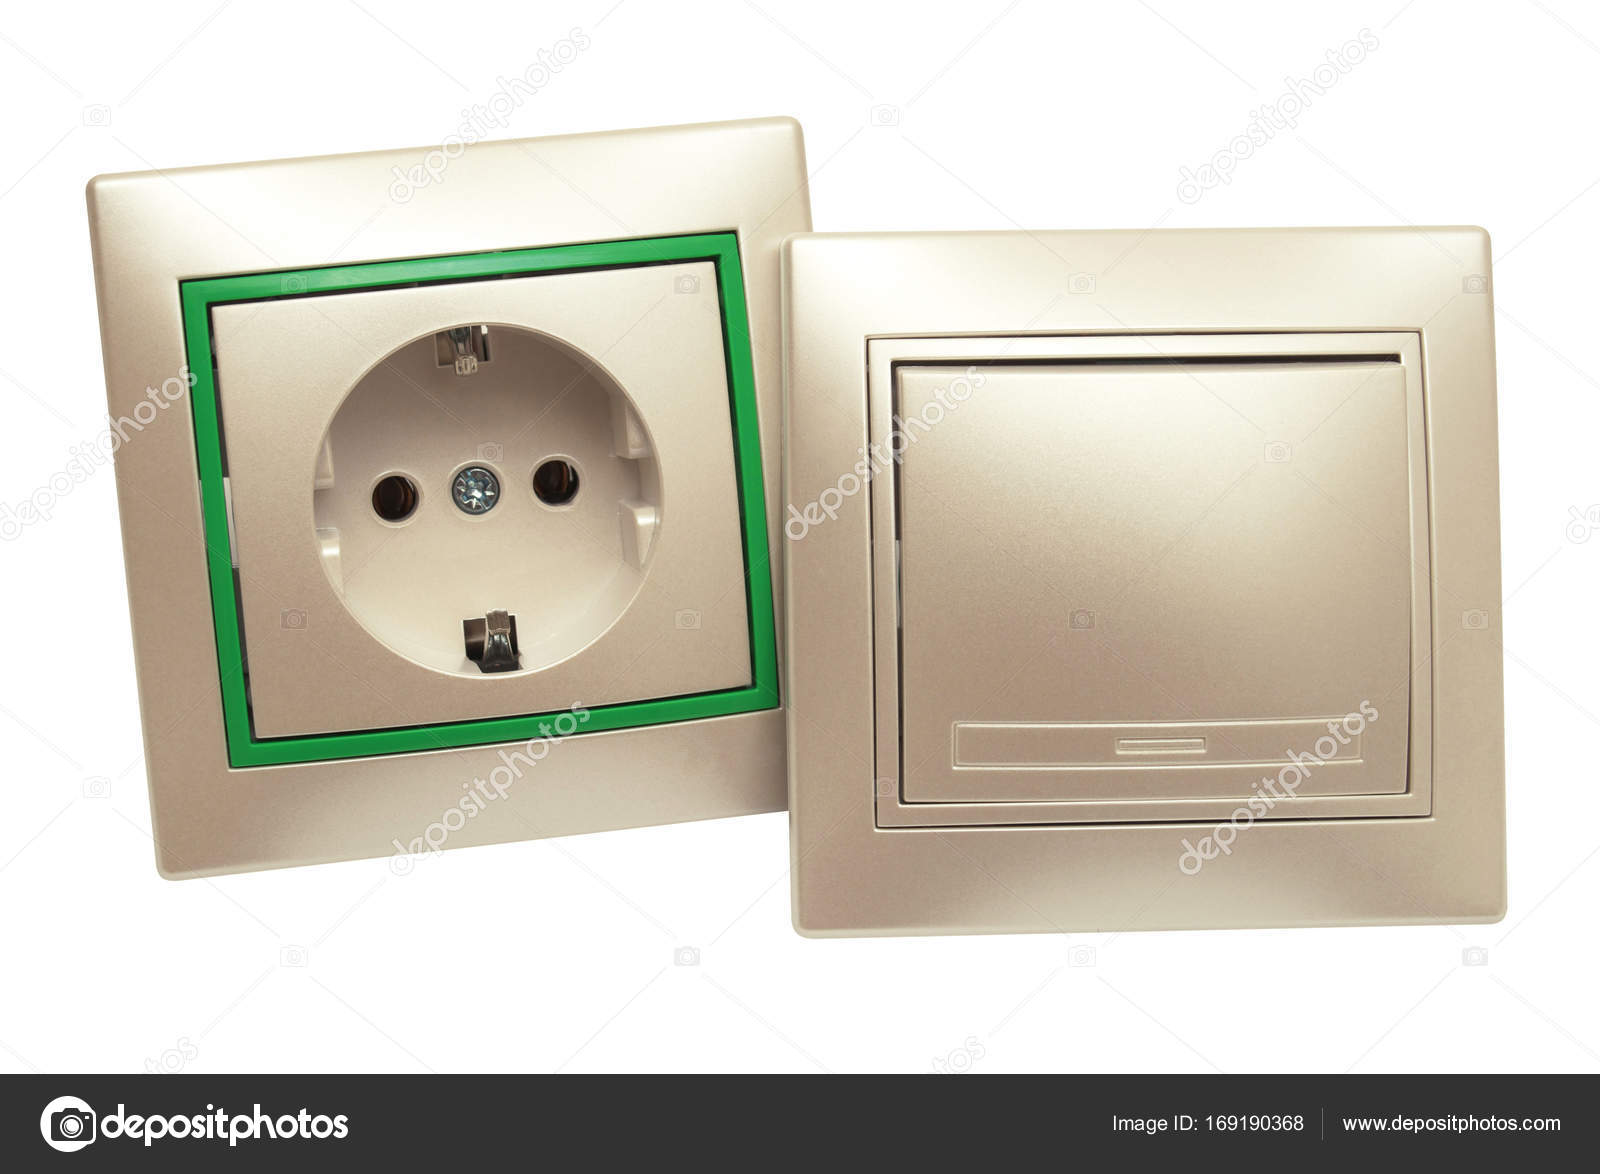 Outlet and light switch isolated on white background. Home elect ...